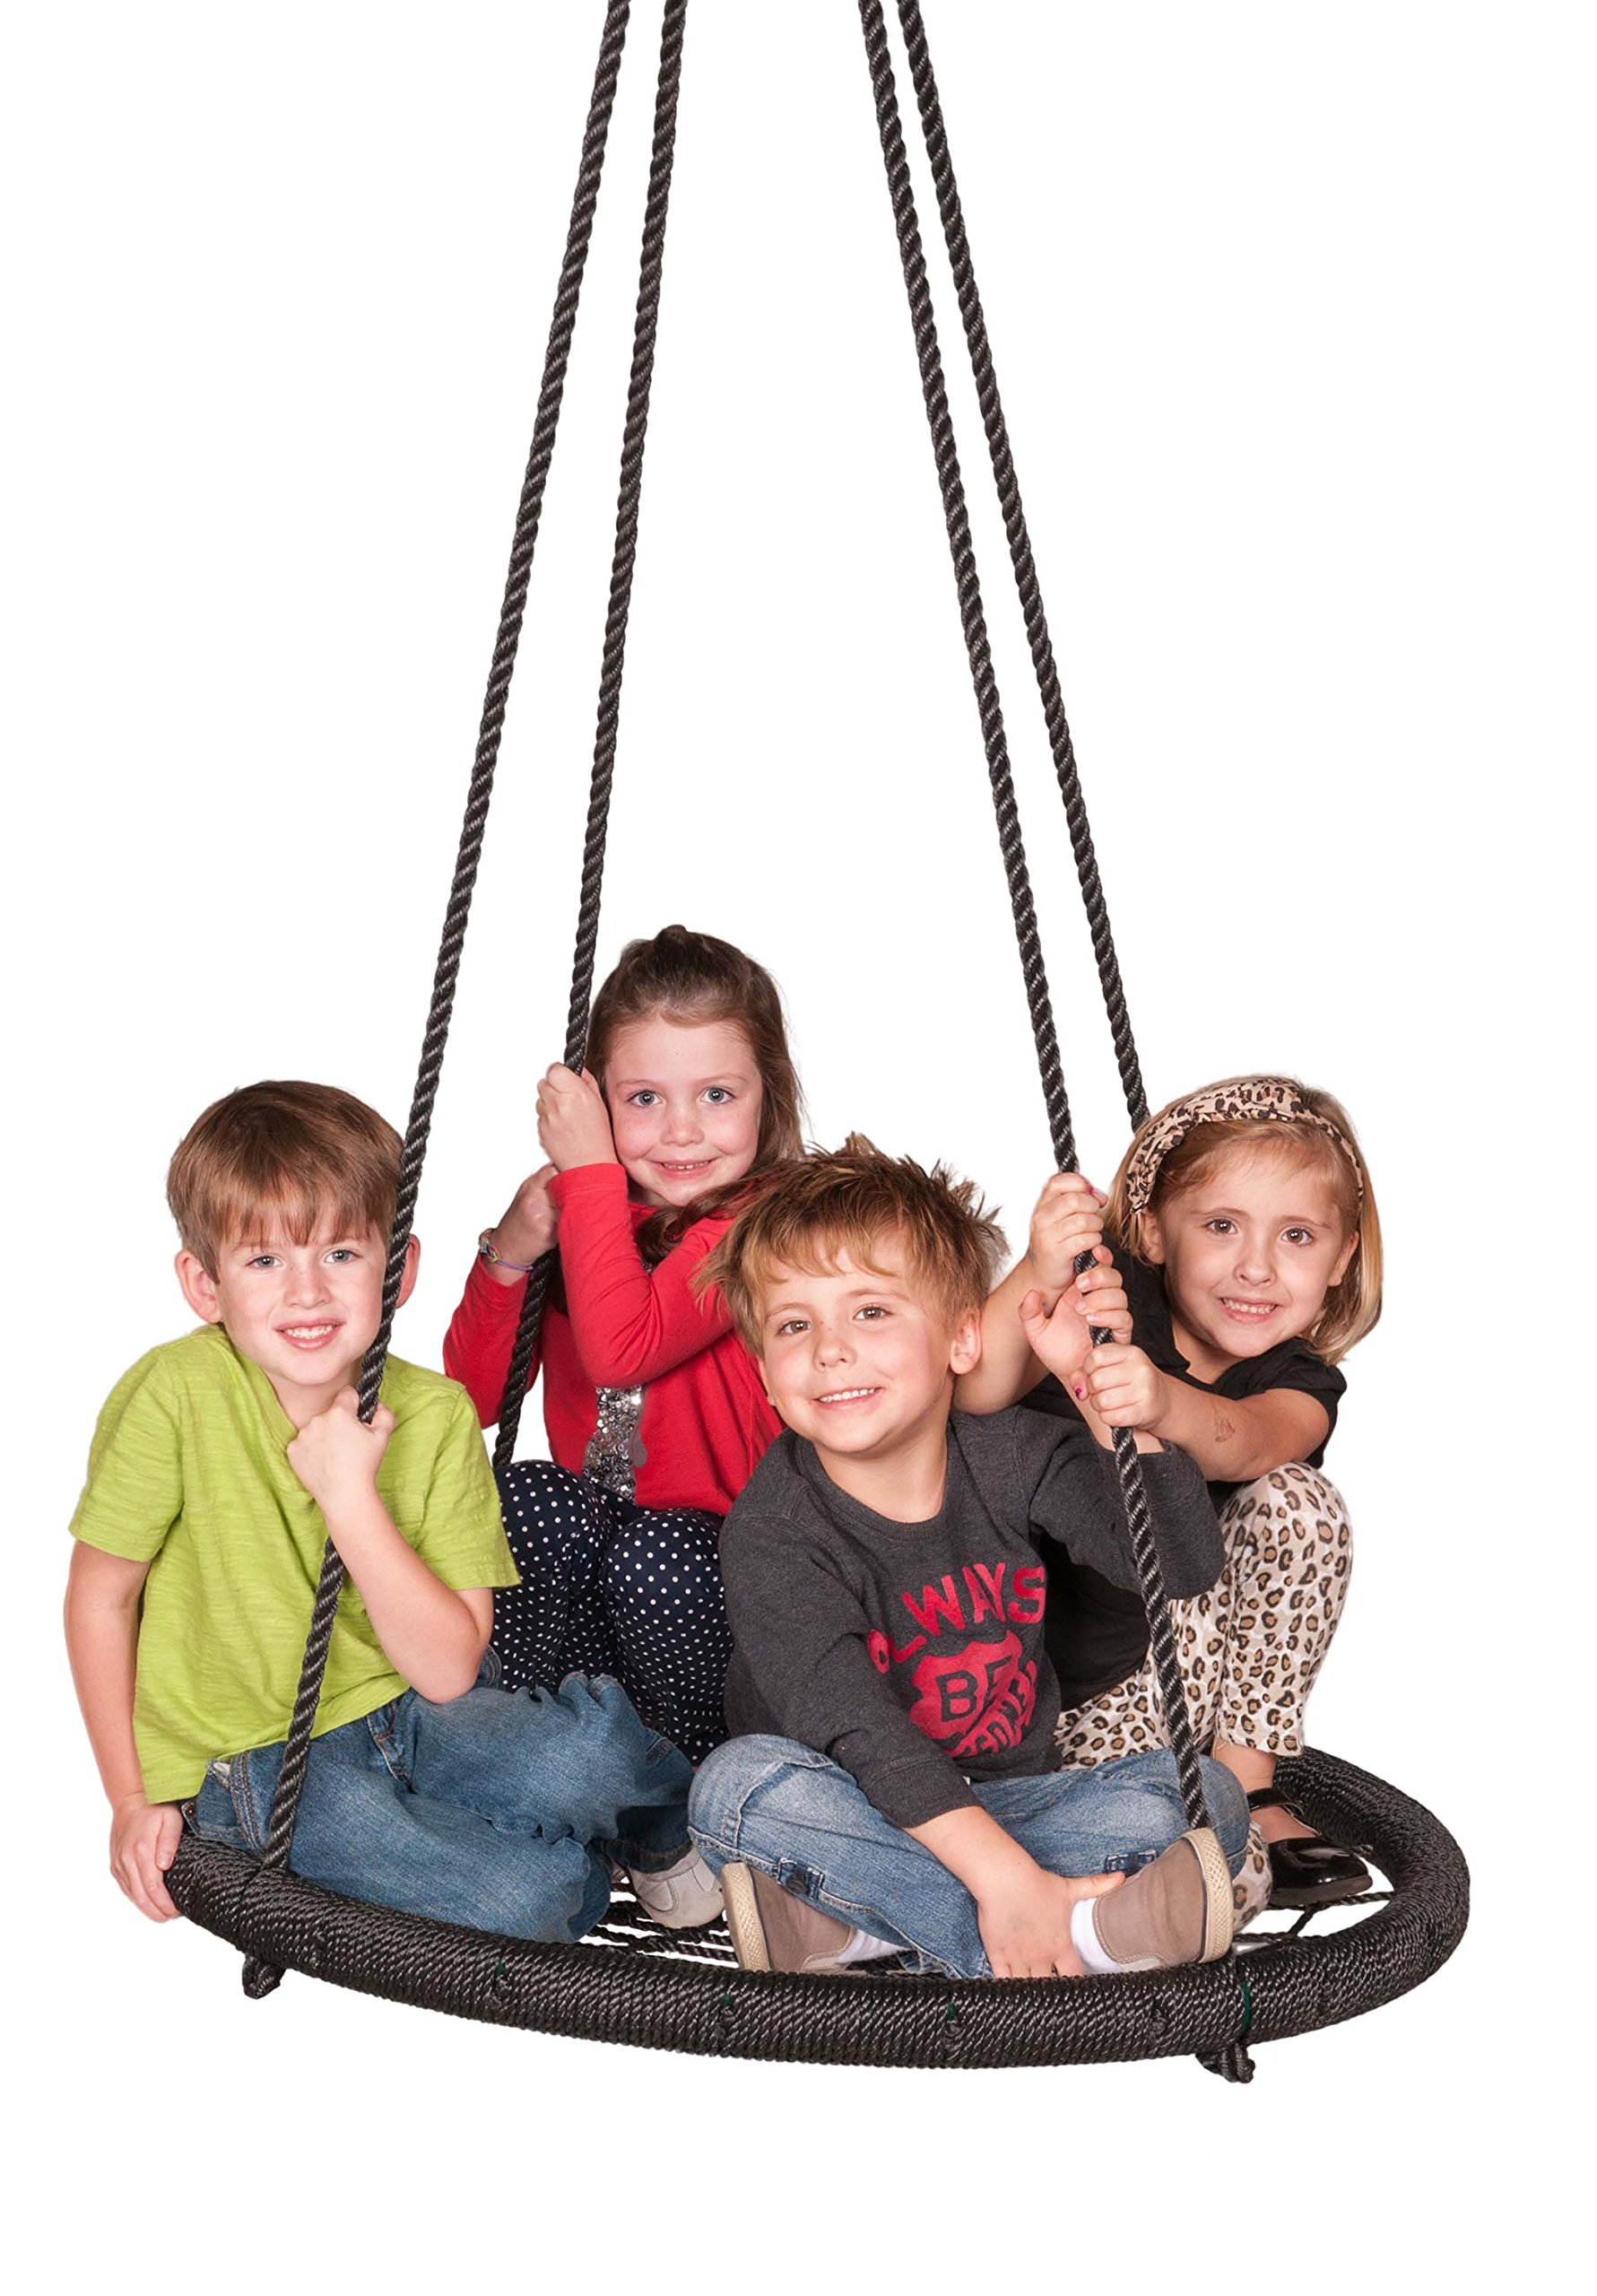 M & M Sales Enterprises Web Riderz Outdoor Swing N' Spin- Safety rated to 600 lb, 39 inch diameter, Adjustable hanging ropes, Ready to hang and enjoy as a family